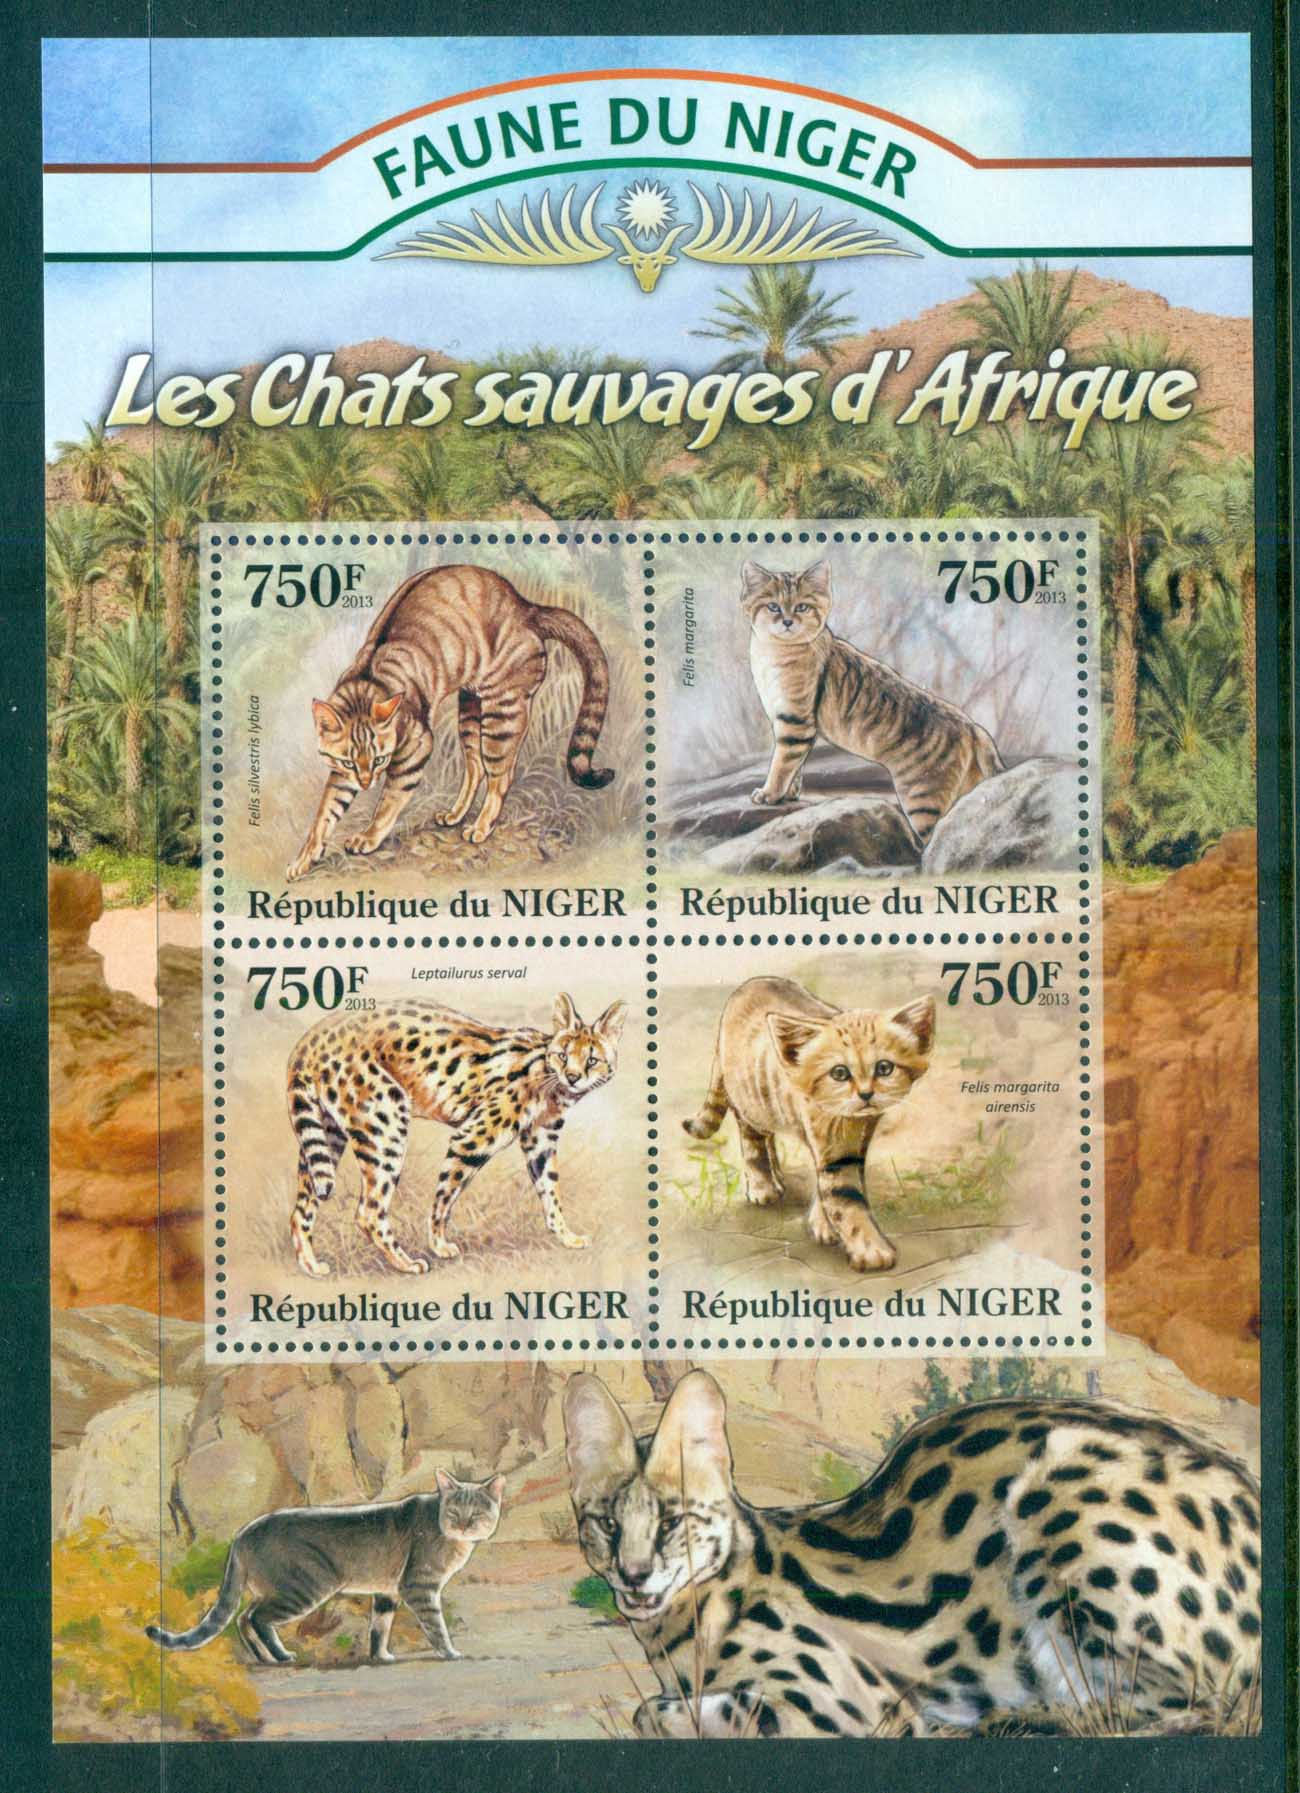 Niger 2013 African Wildlife, Big Cats, Lions, Leopard, Caracal MS MUH NIG13125a